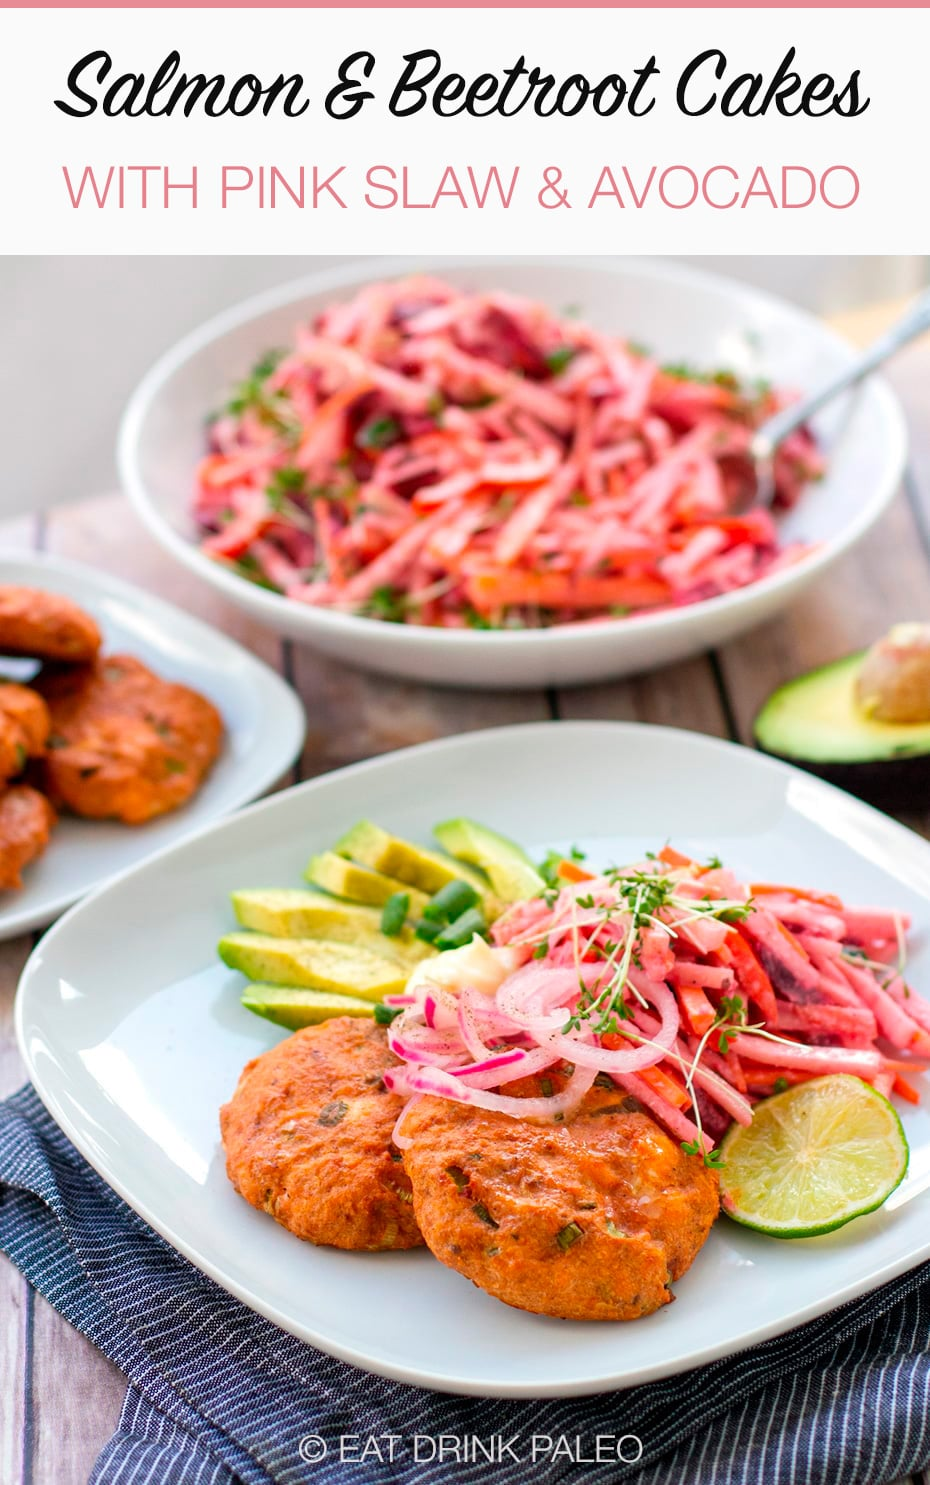 Paleo Salmon & Beet Cakes With Pink Slaw, Avocado & Pickled Onions (Whole30, Gluten-Free, Low-Carb)